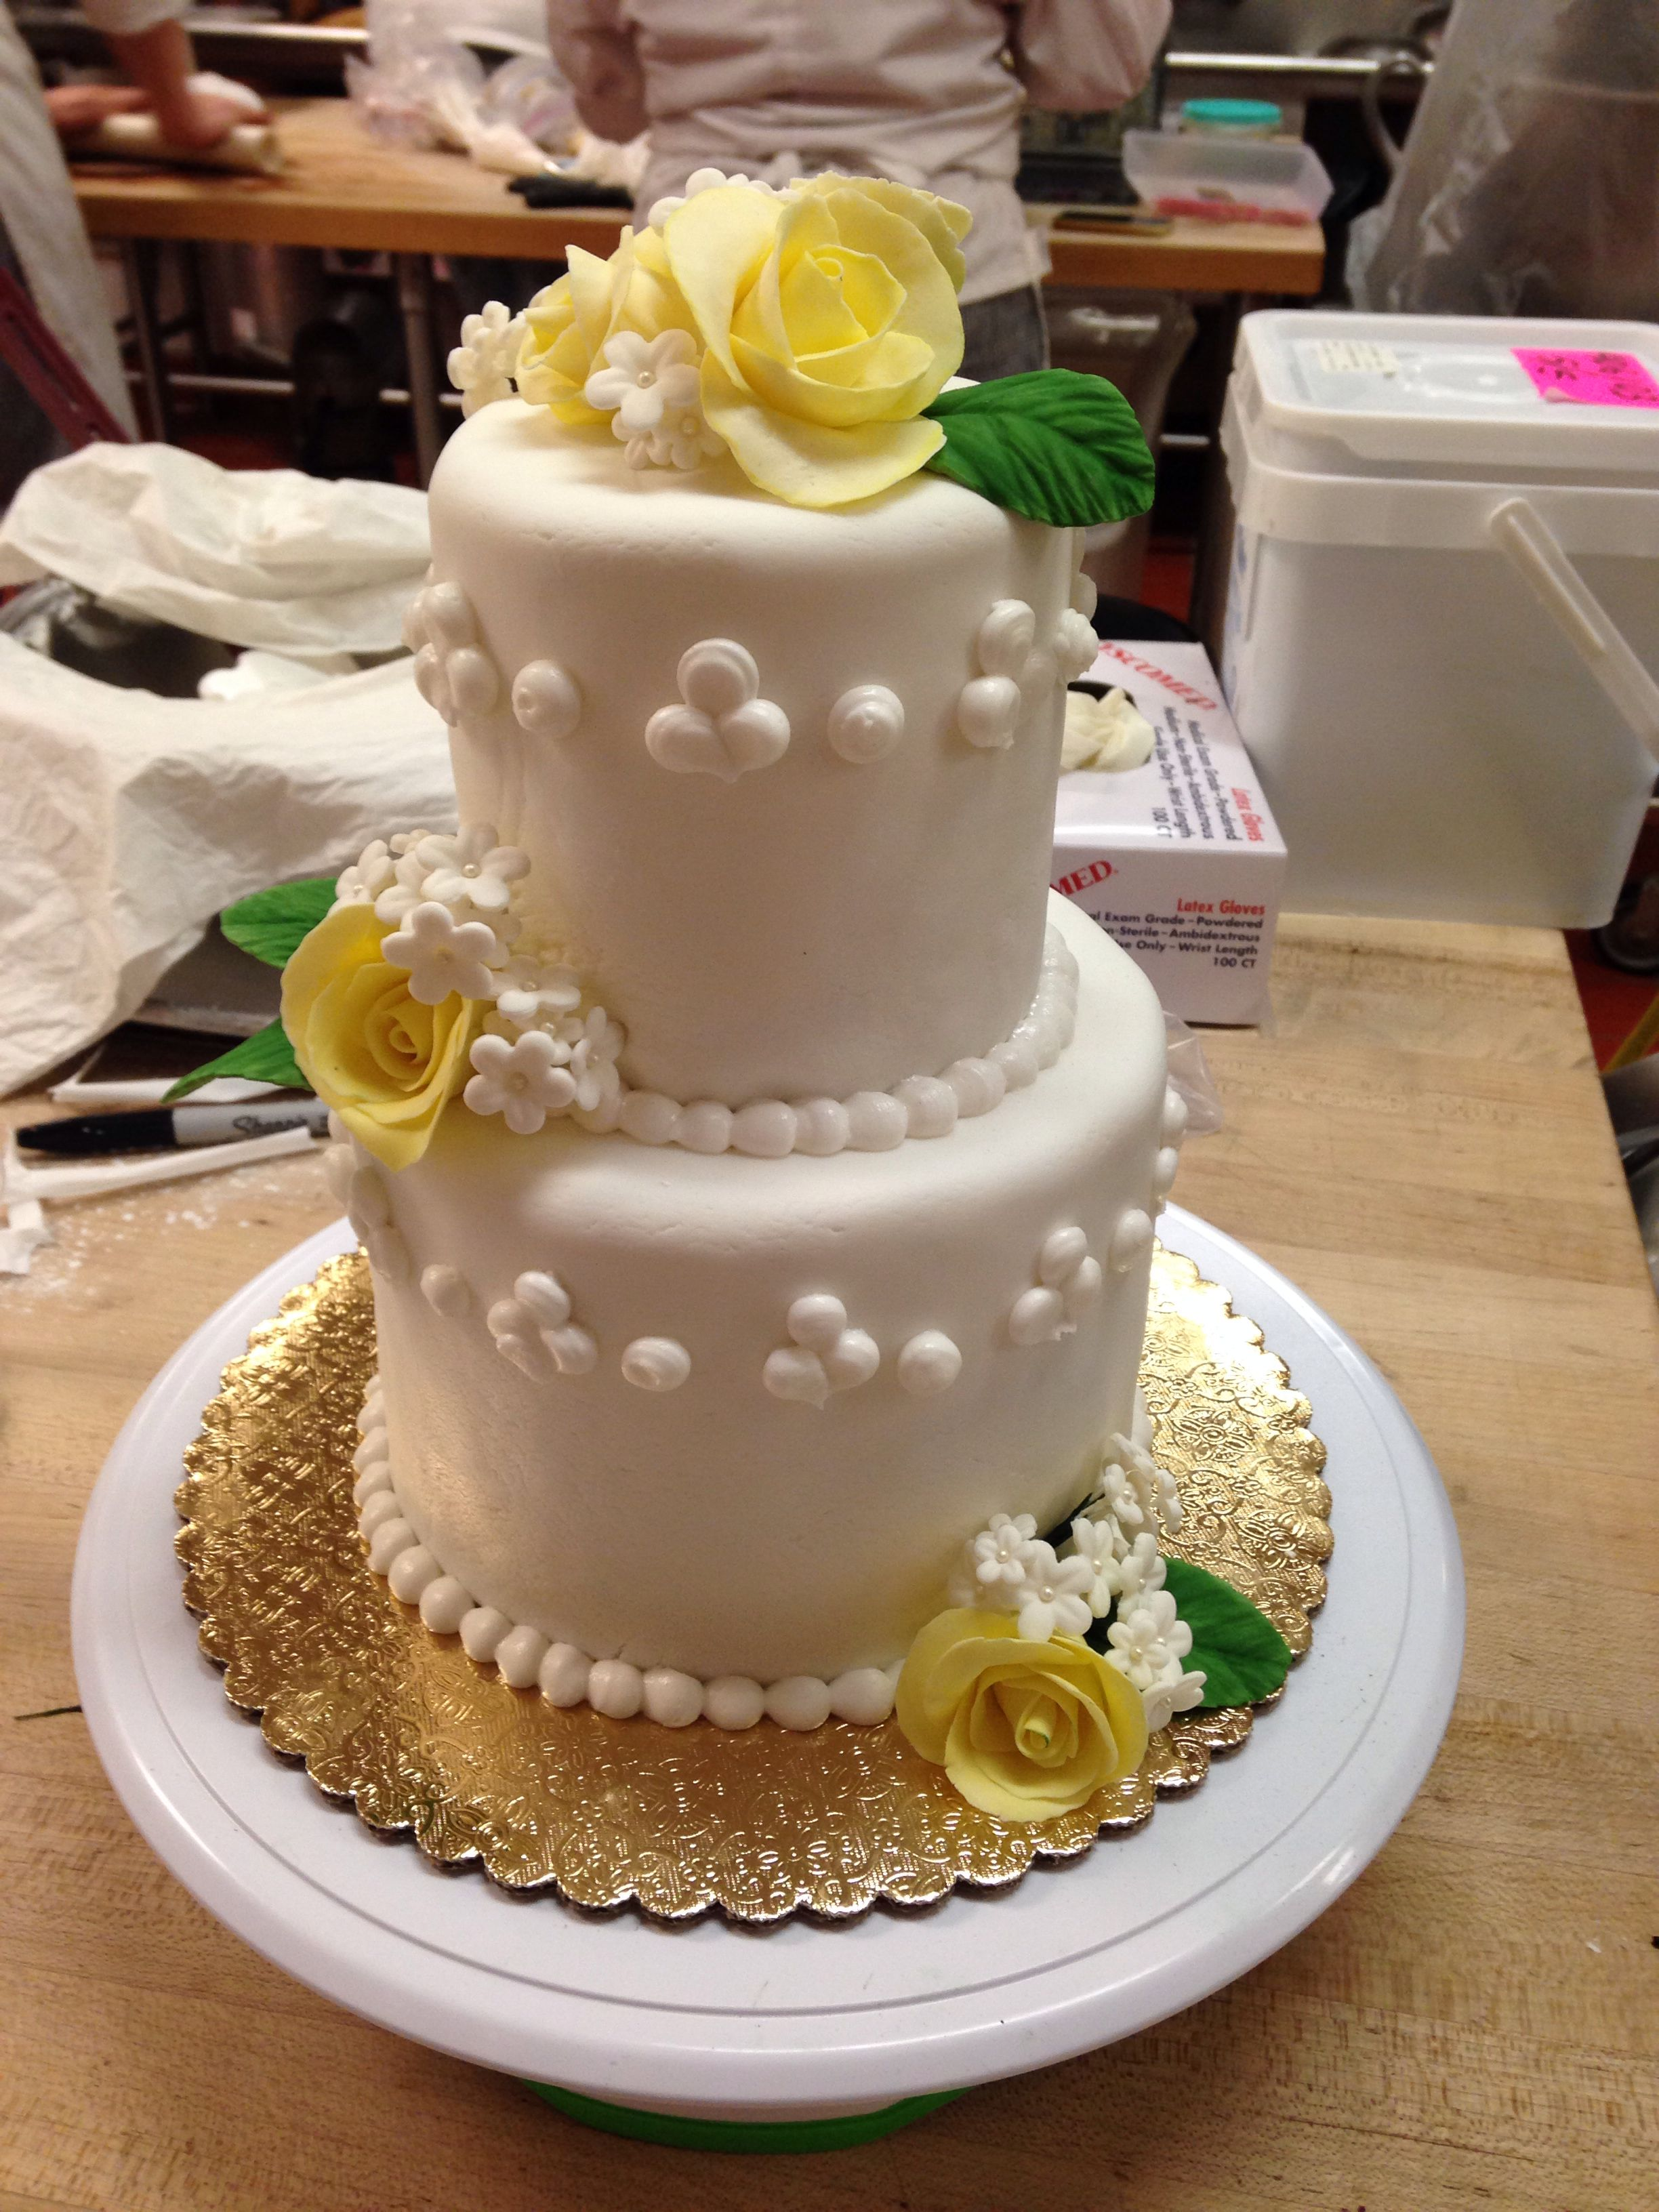 High-ratio chocolate cakes filled with Italian buttercream covered in fondant